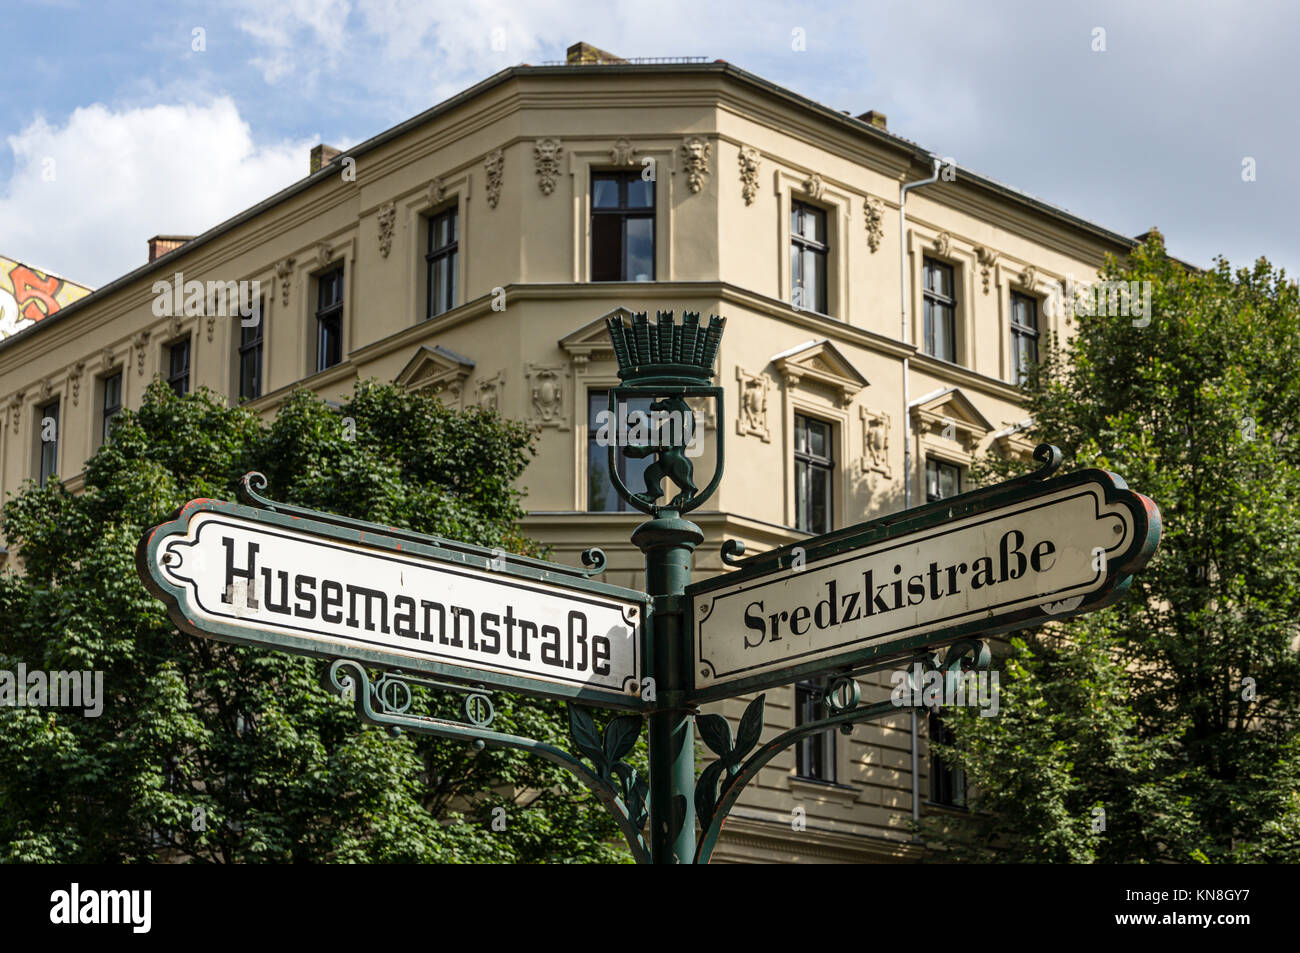 Street sign on the corner of Husemann Straße in East Berlin's Mitte district - Stock Image